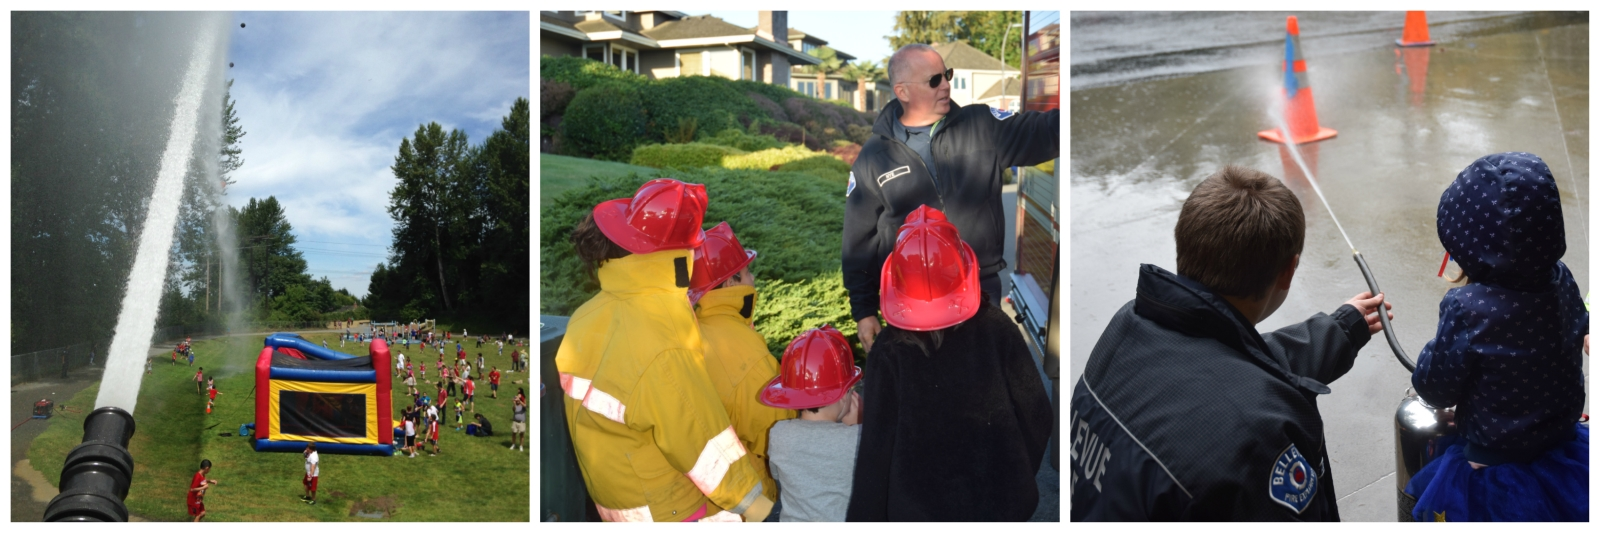 Image of three events where firefighters are interacting wit